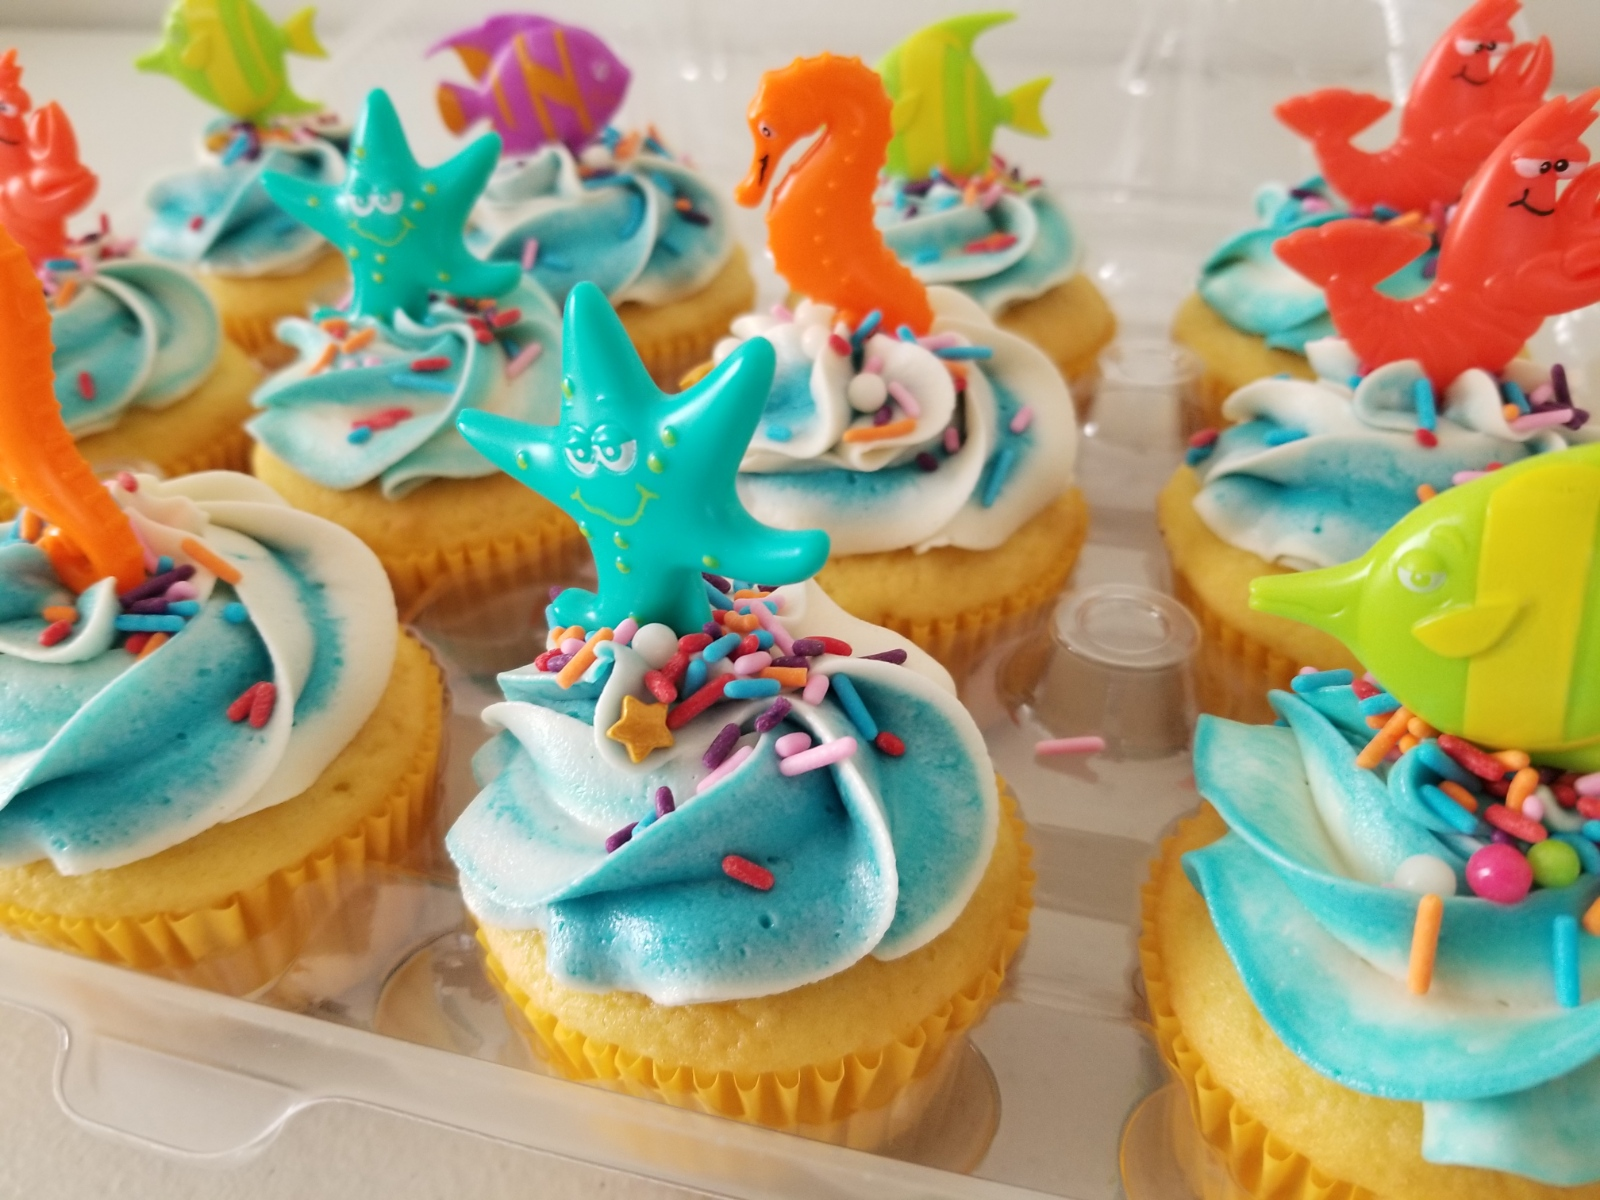 Aquatic Cupcakes